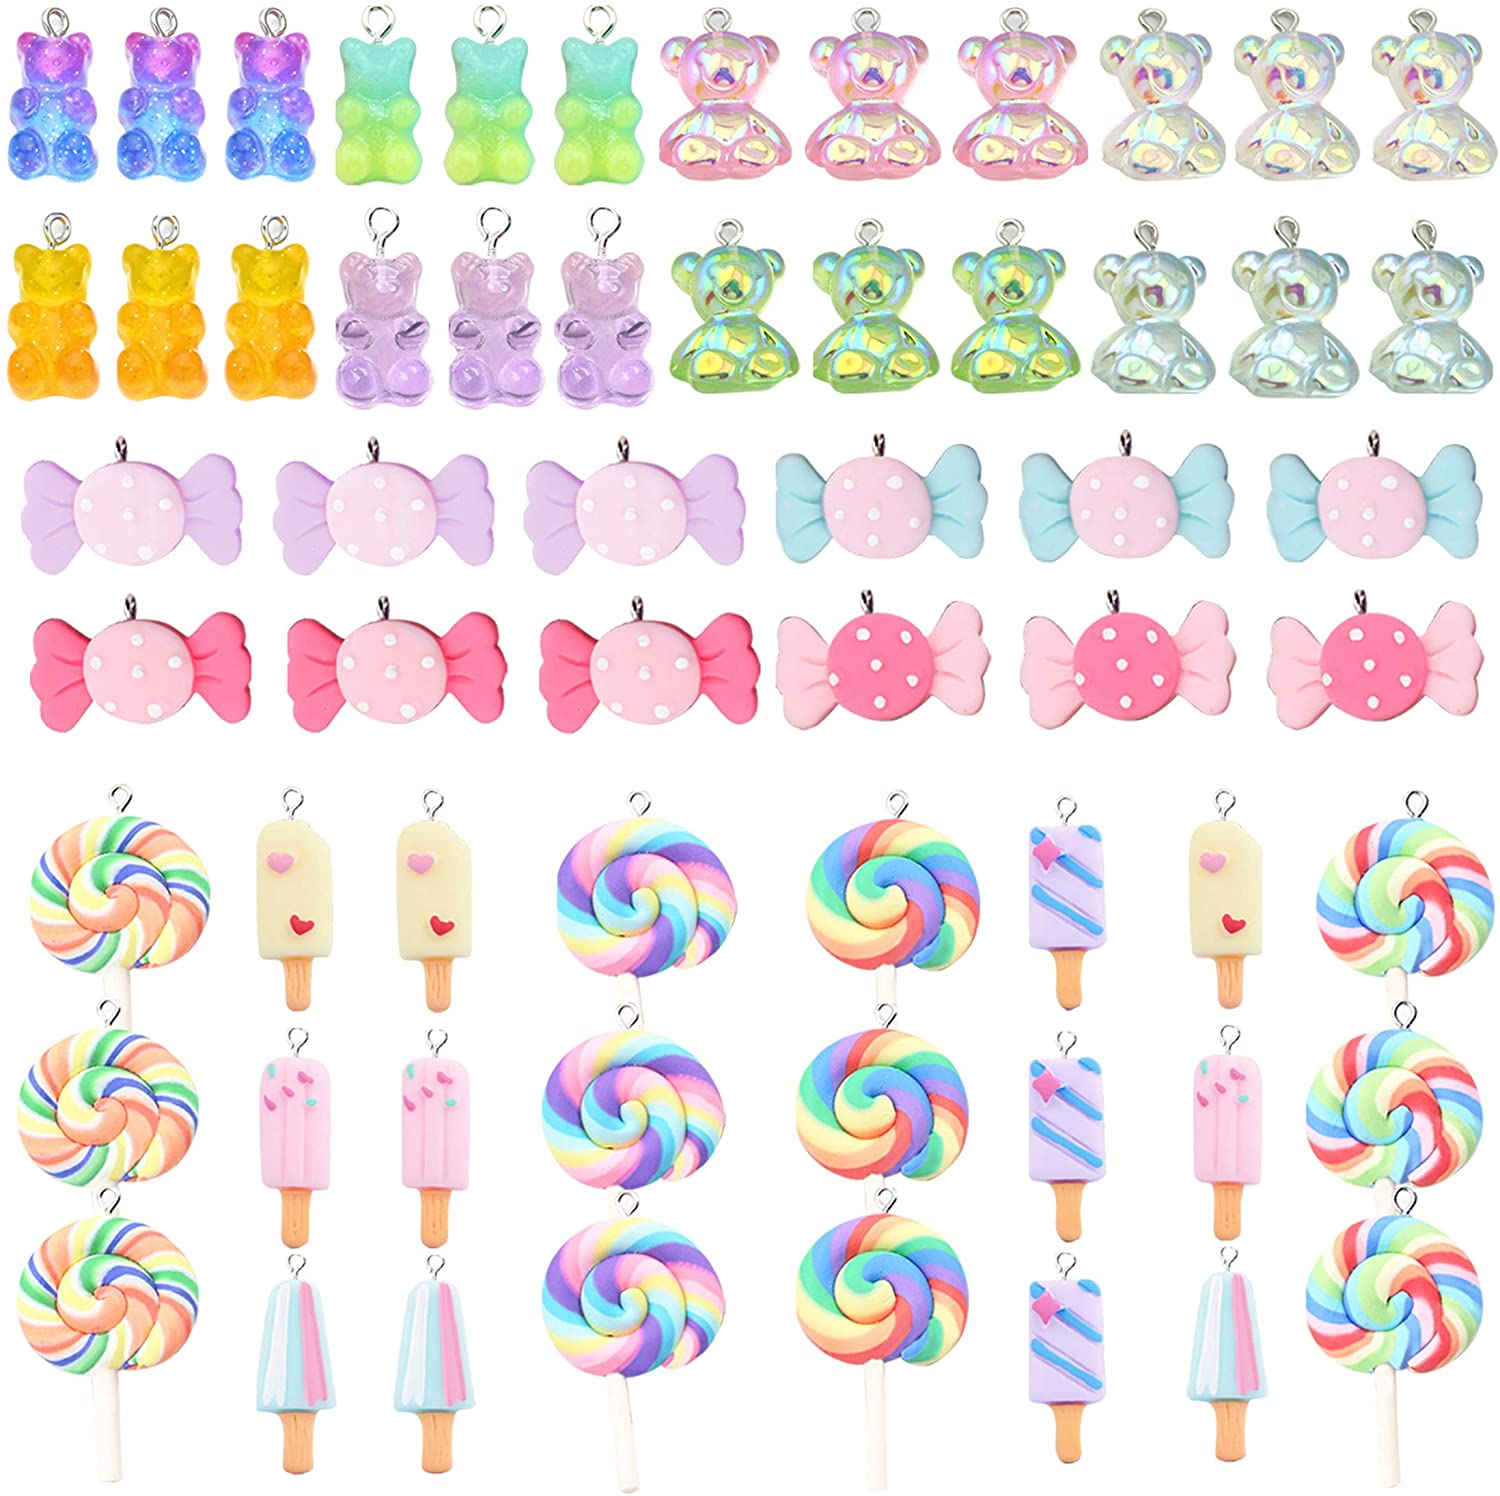 Colorful Candy Pendant Charm, 60 Pcs Mixed Cute Charms Set Gummy Bear Charms Ice Cream Sweet Candy Pendants Lollipop Shape Polymer Clay Charms Resin Charms for Jewelry Making